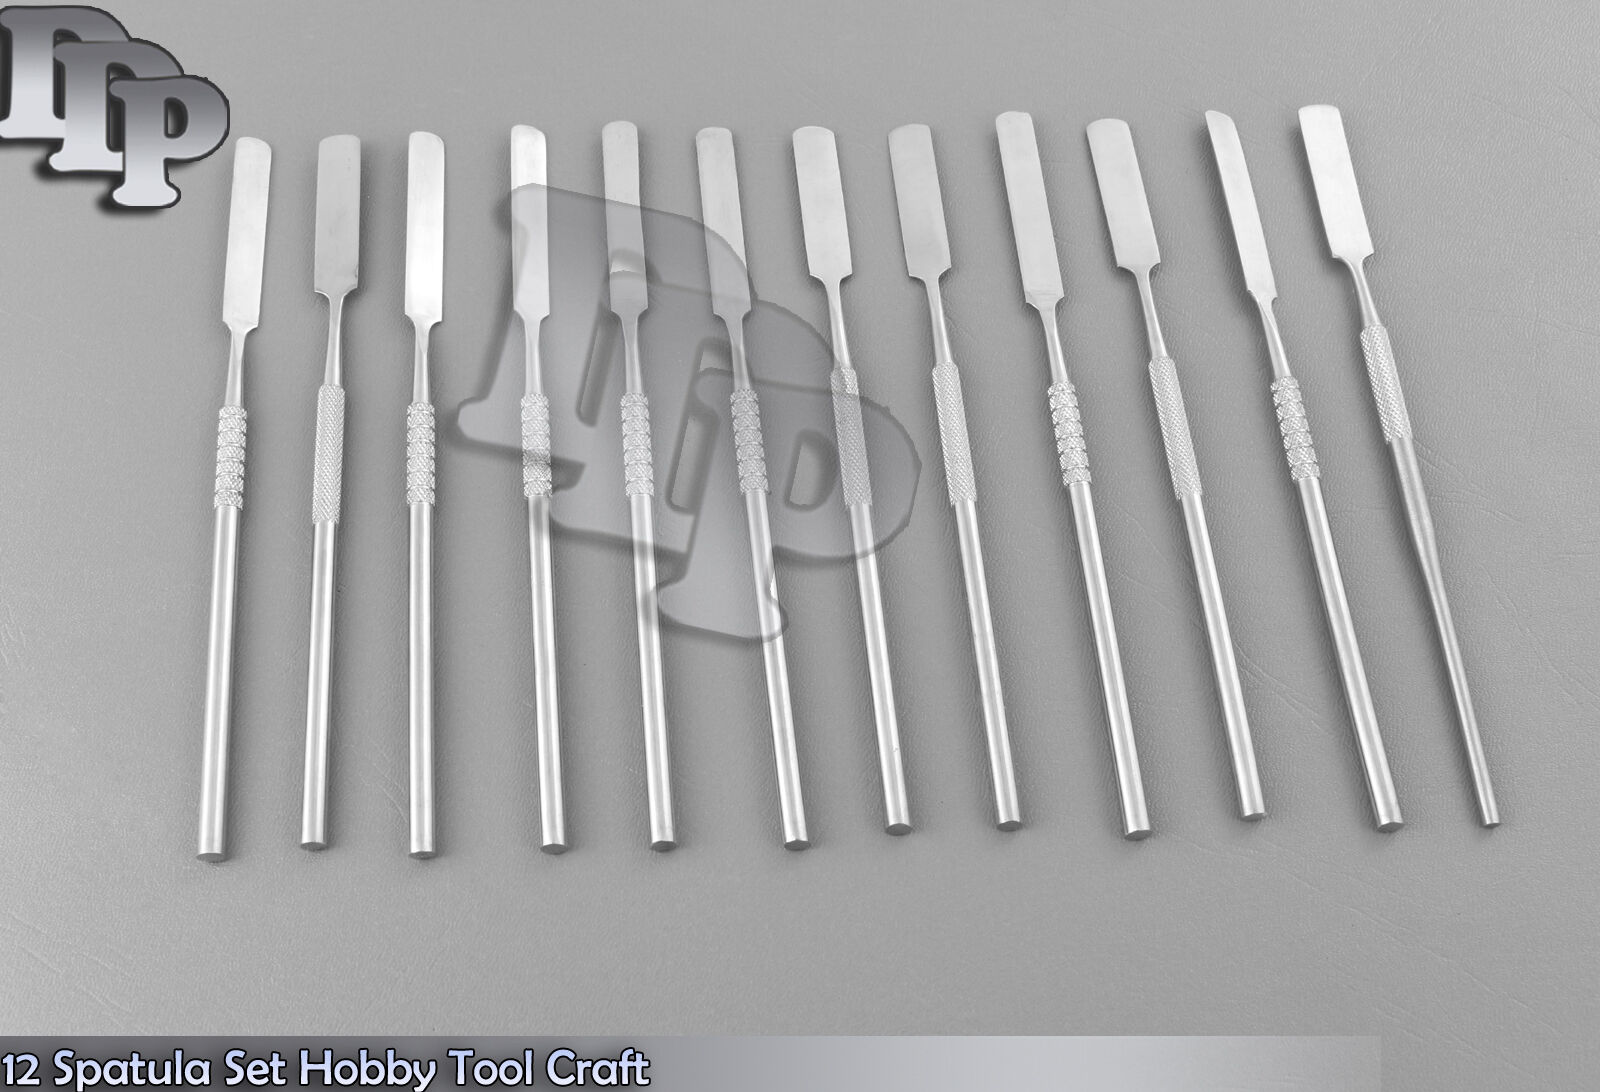 12 Spatula Set Hobby Tool Craft Surgical Stainles steel